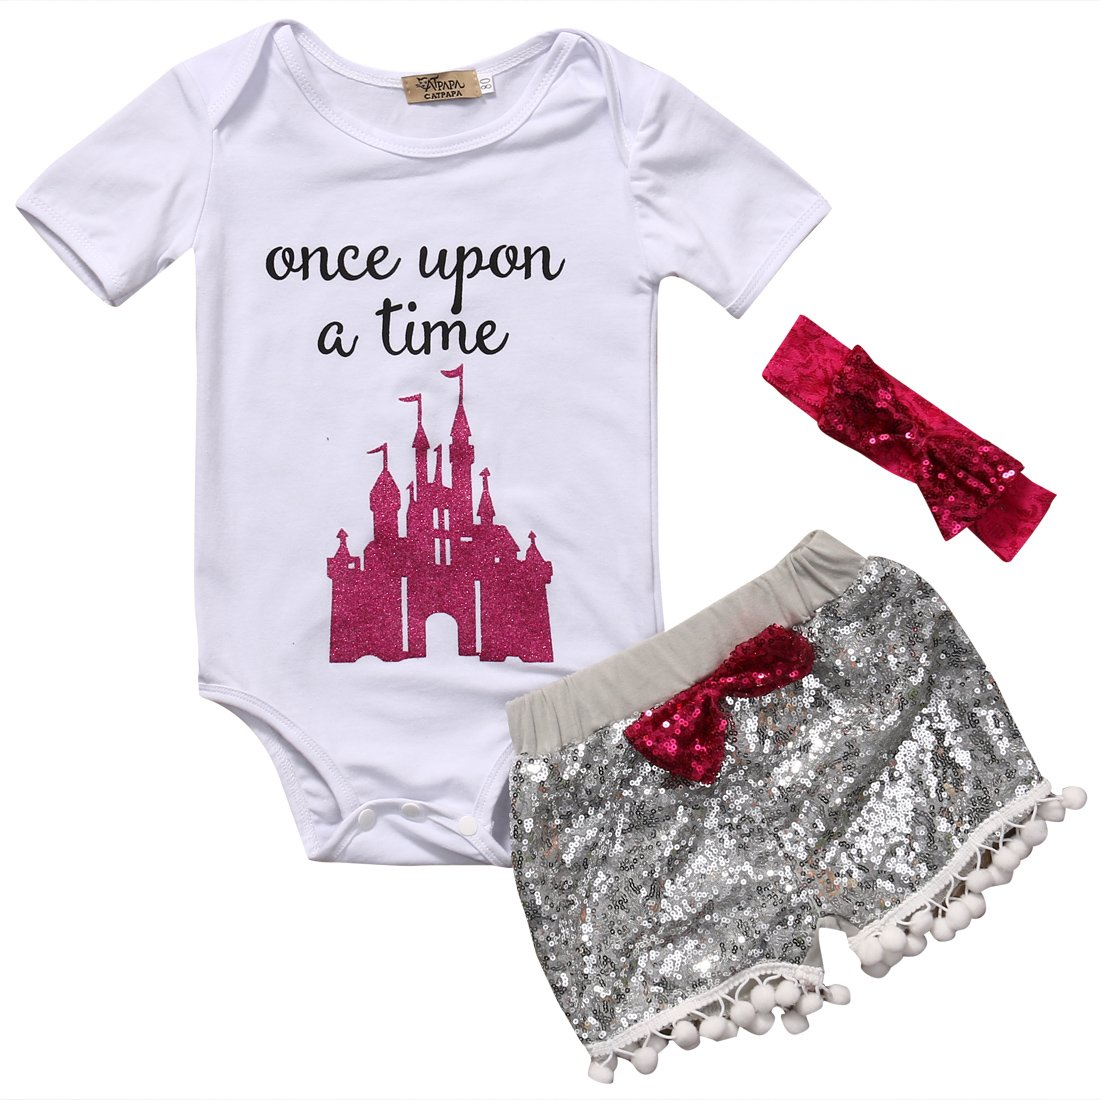 hirigin Baby Girls Clothes Set White Top Letter Print Romper+Grey Shorts+Bow Headband